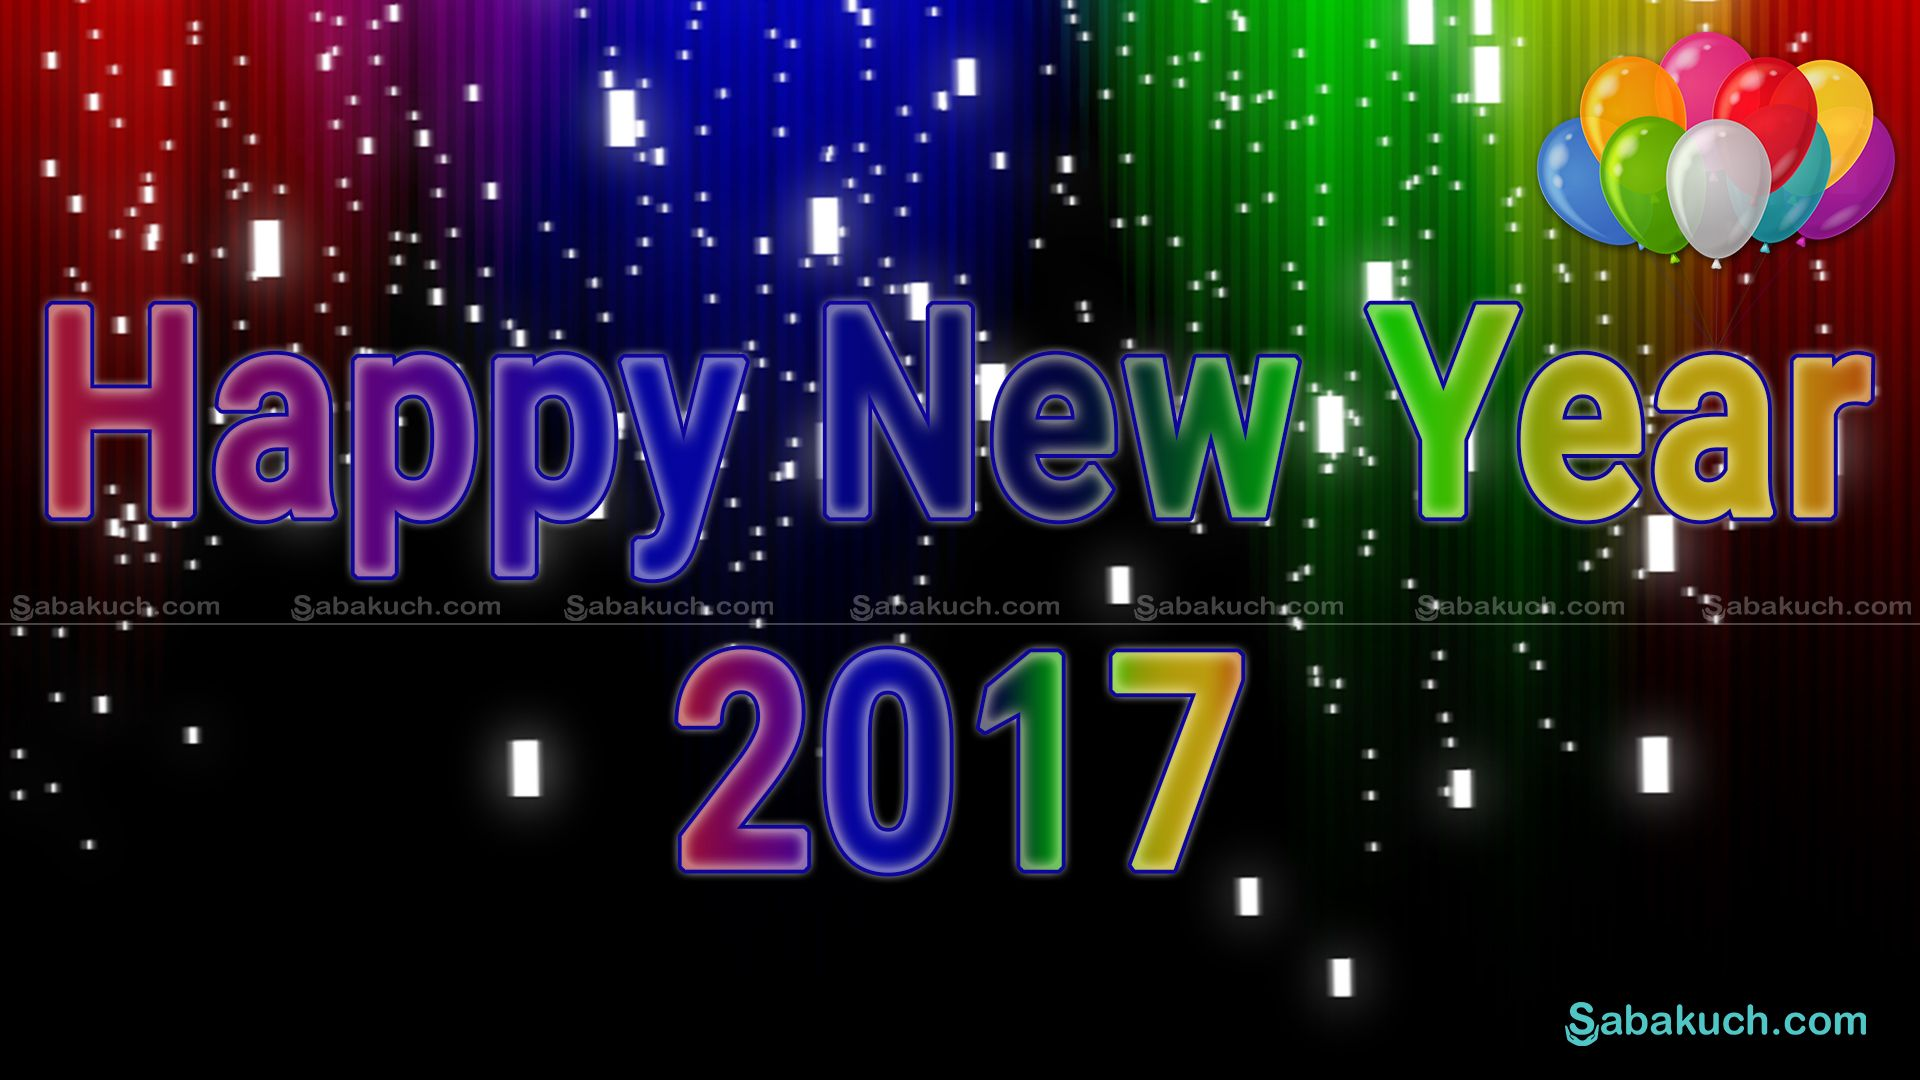 now check out best and beautiful happy new year photos and wallpapers for 2017 download